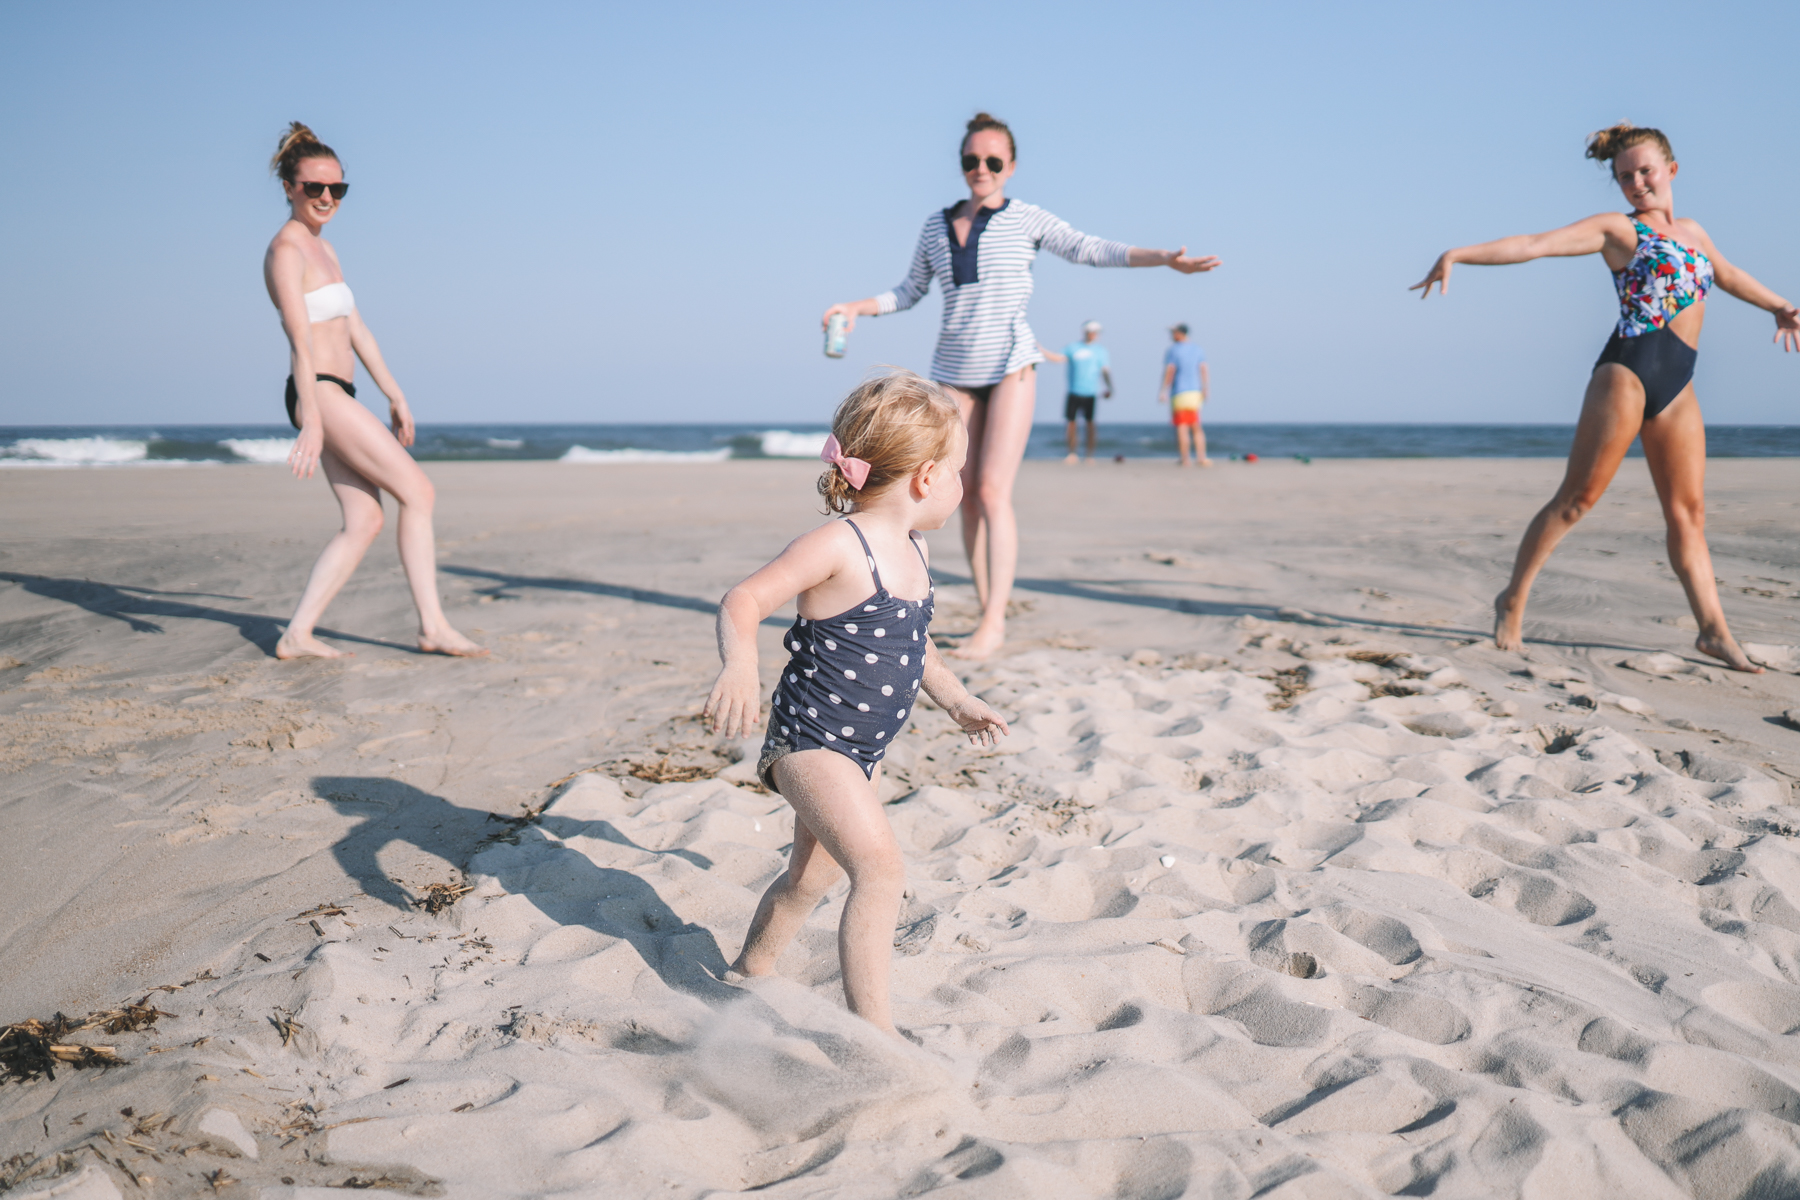 Emma is running in the sand, her cousins pictured in the background